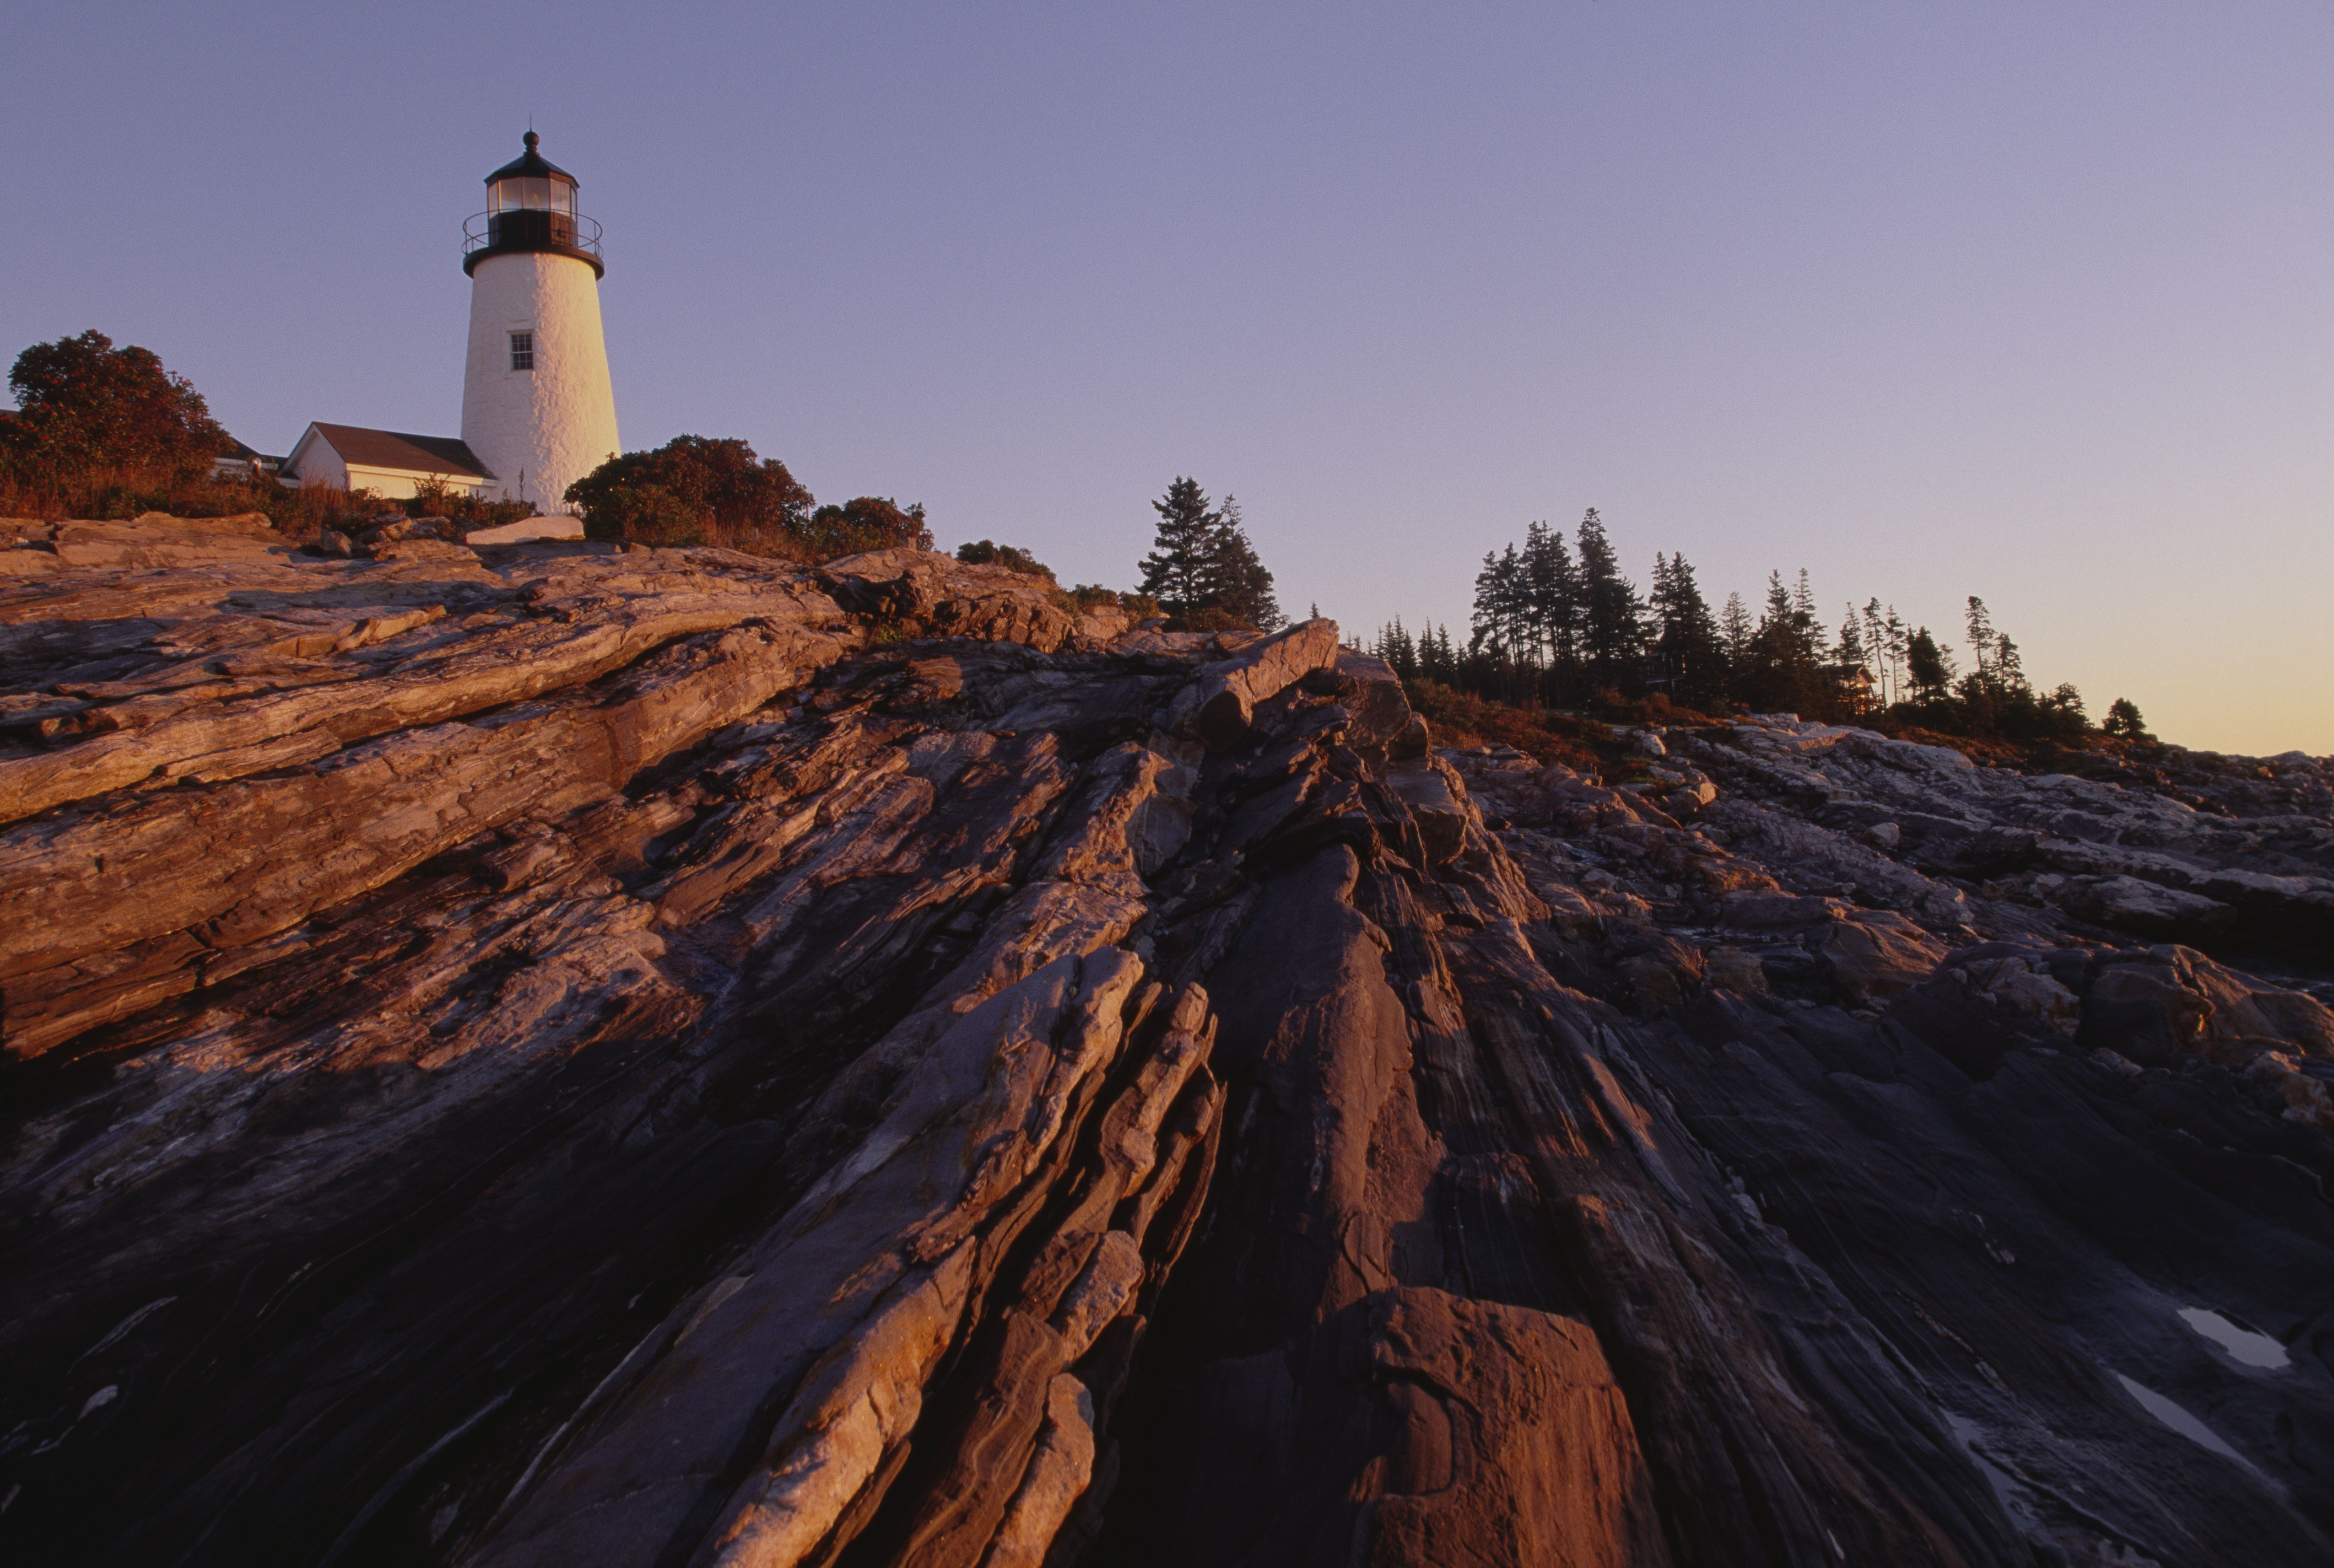 Cliff and lighthouse, Pemaquid Point, Maine